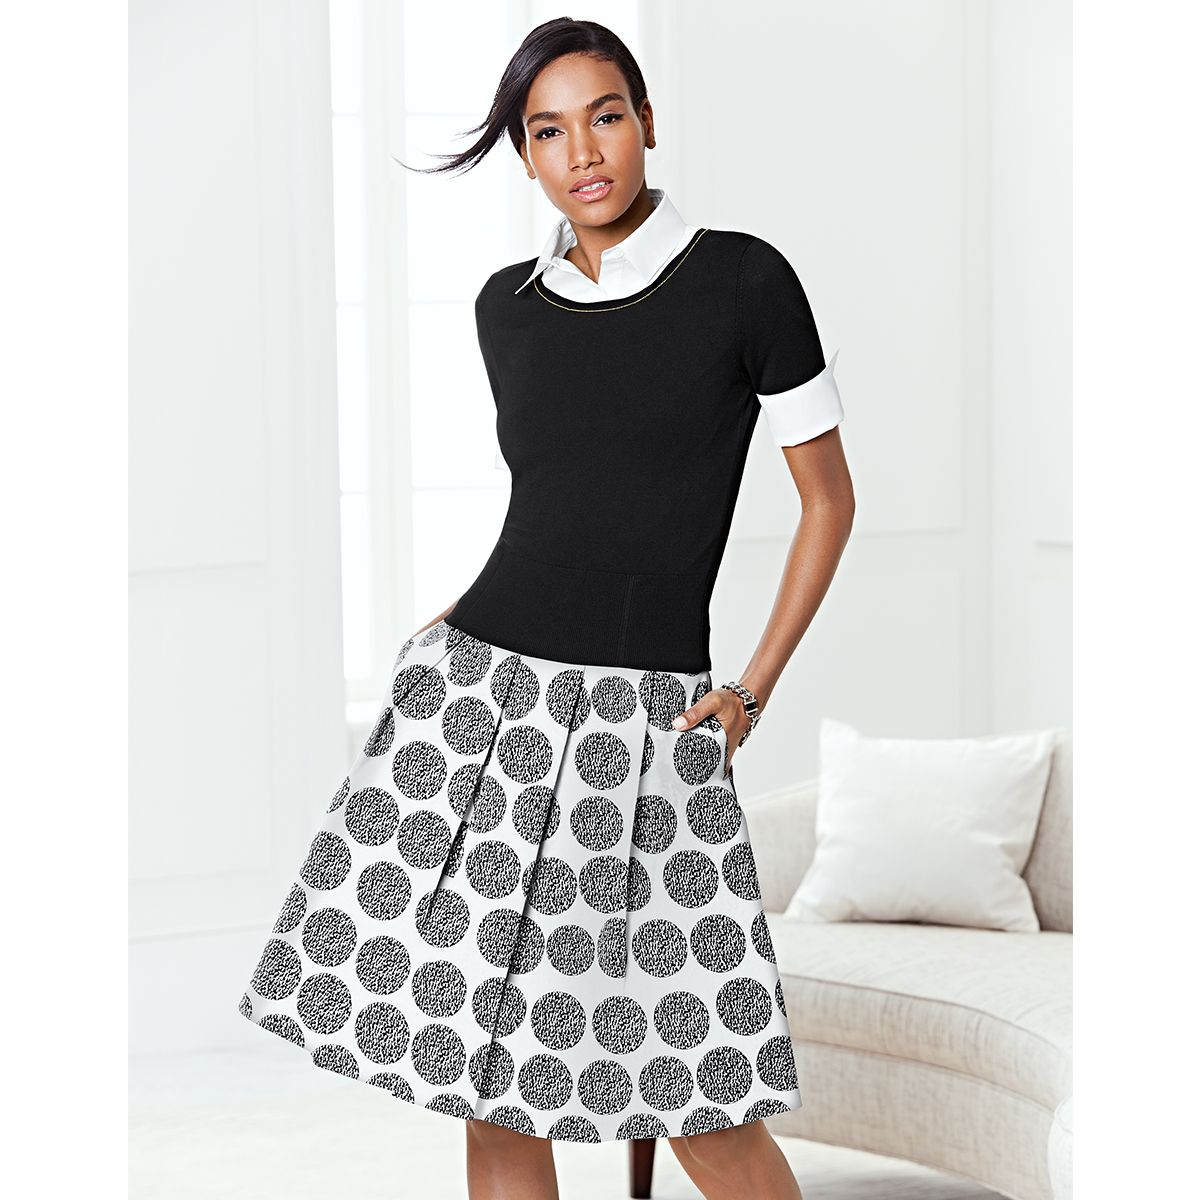 Pleated perfection flares out in classic sophistication across this faille skirt with a modest midi length and bold black and white dot print. #WHBM #WorkMastered